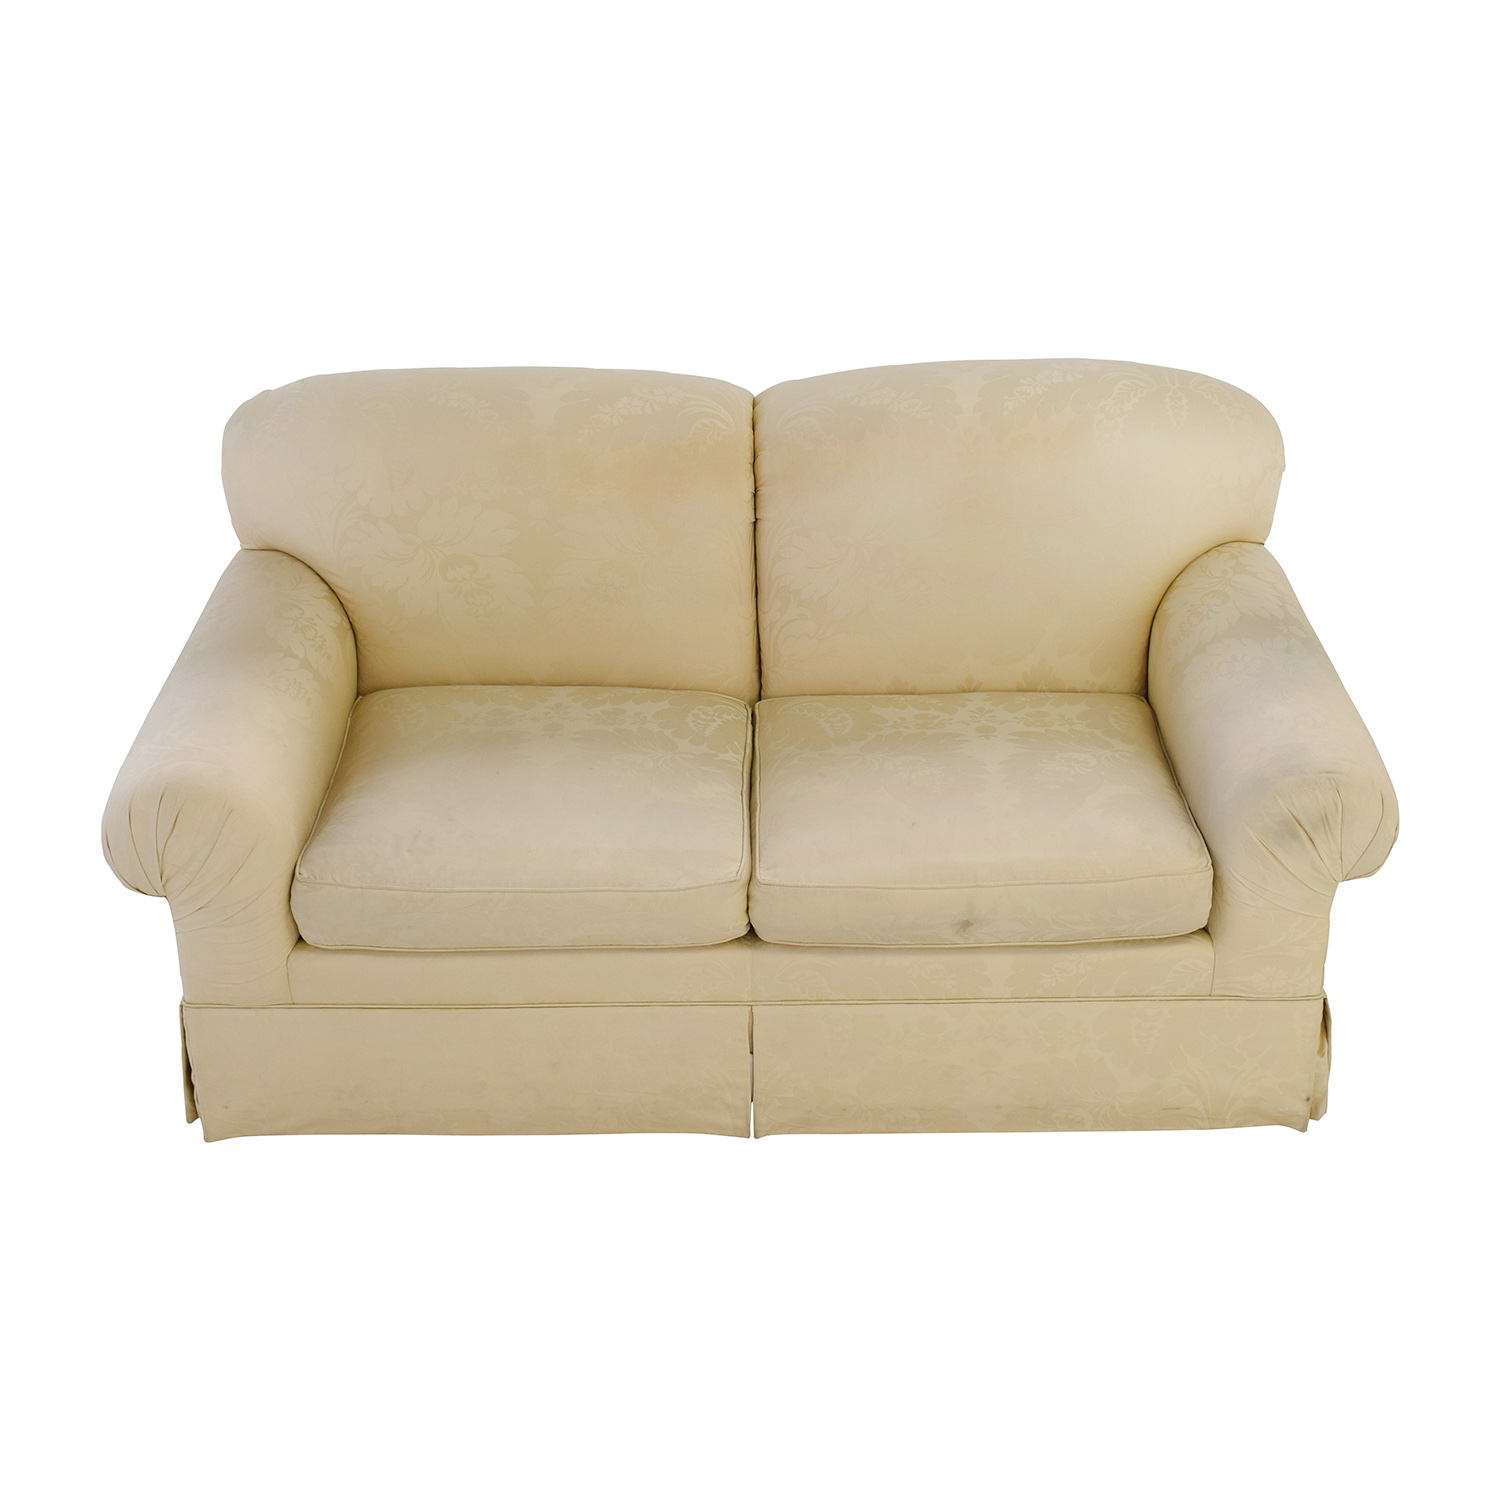 Ralph Lauren Ralph Lauren Silk Brocade Oversized Loveseat on sale